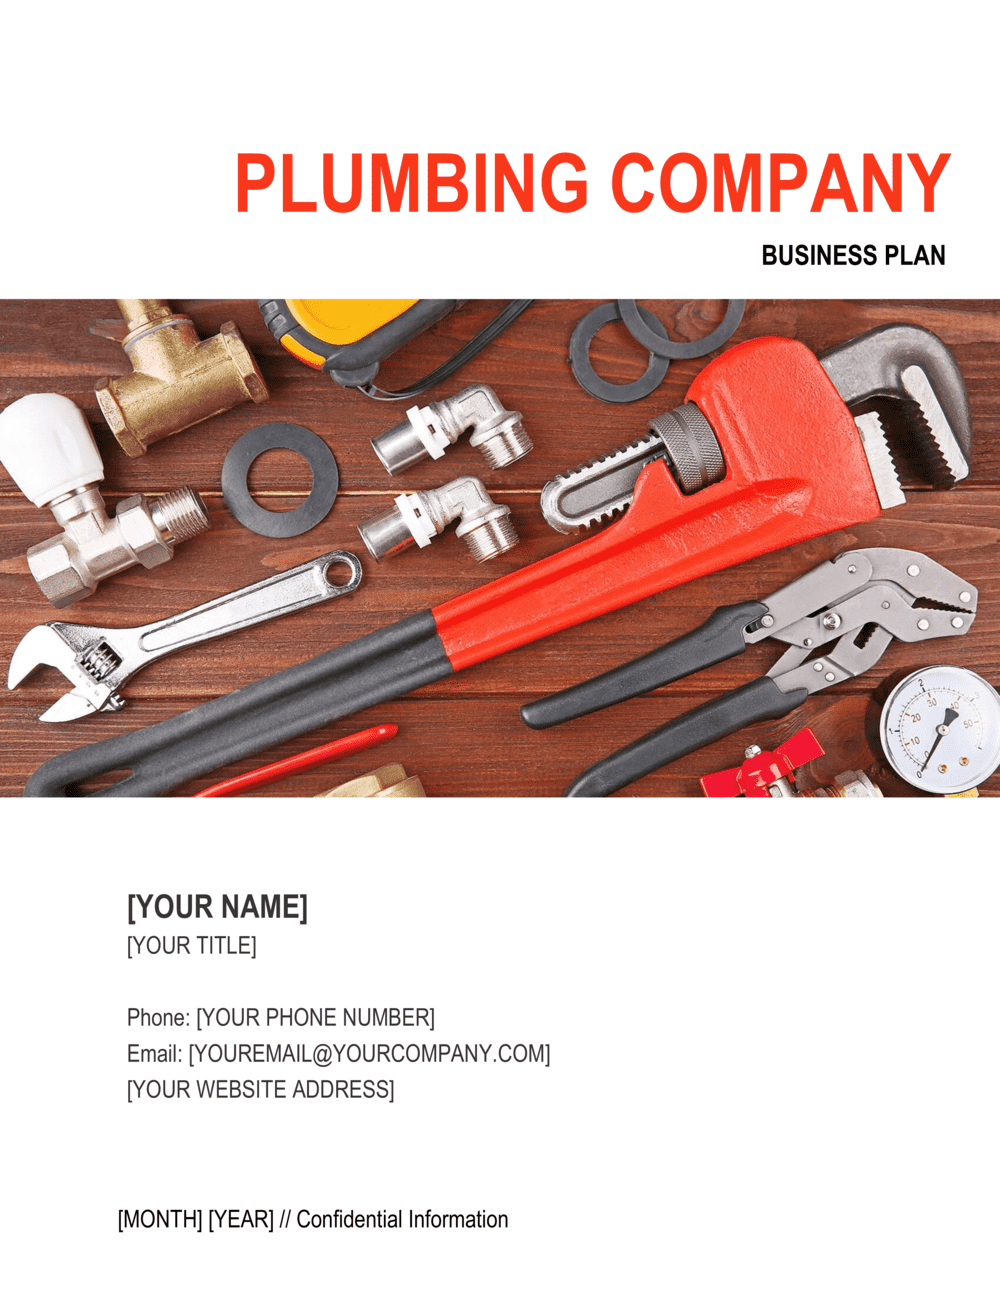 Business-in-a-Box's Plumbing Company Business Plan Template